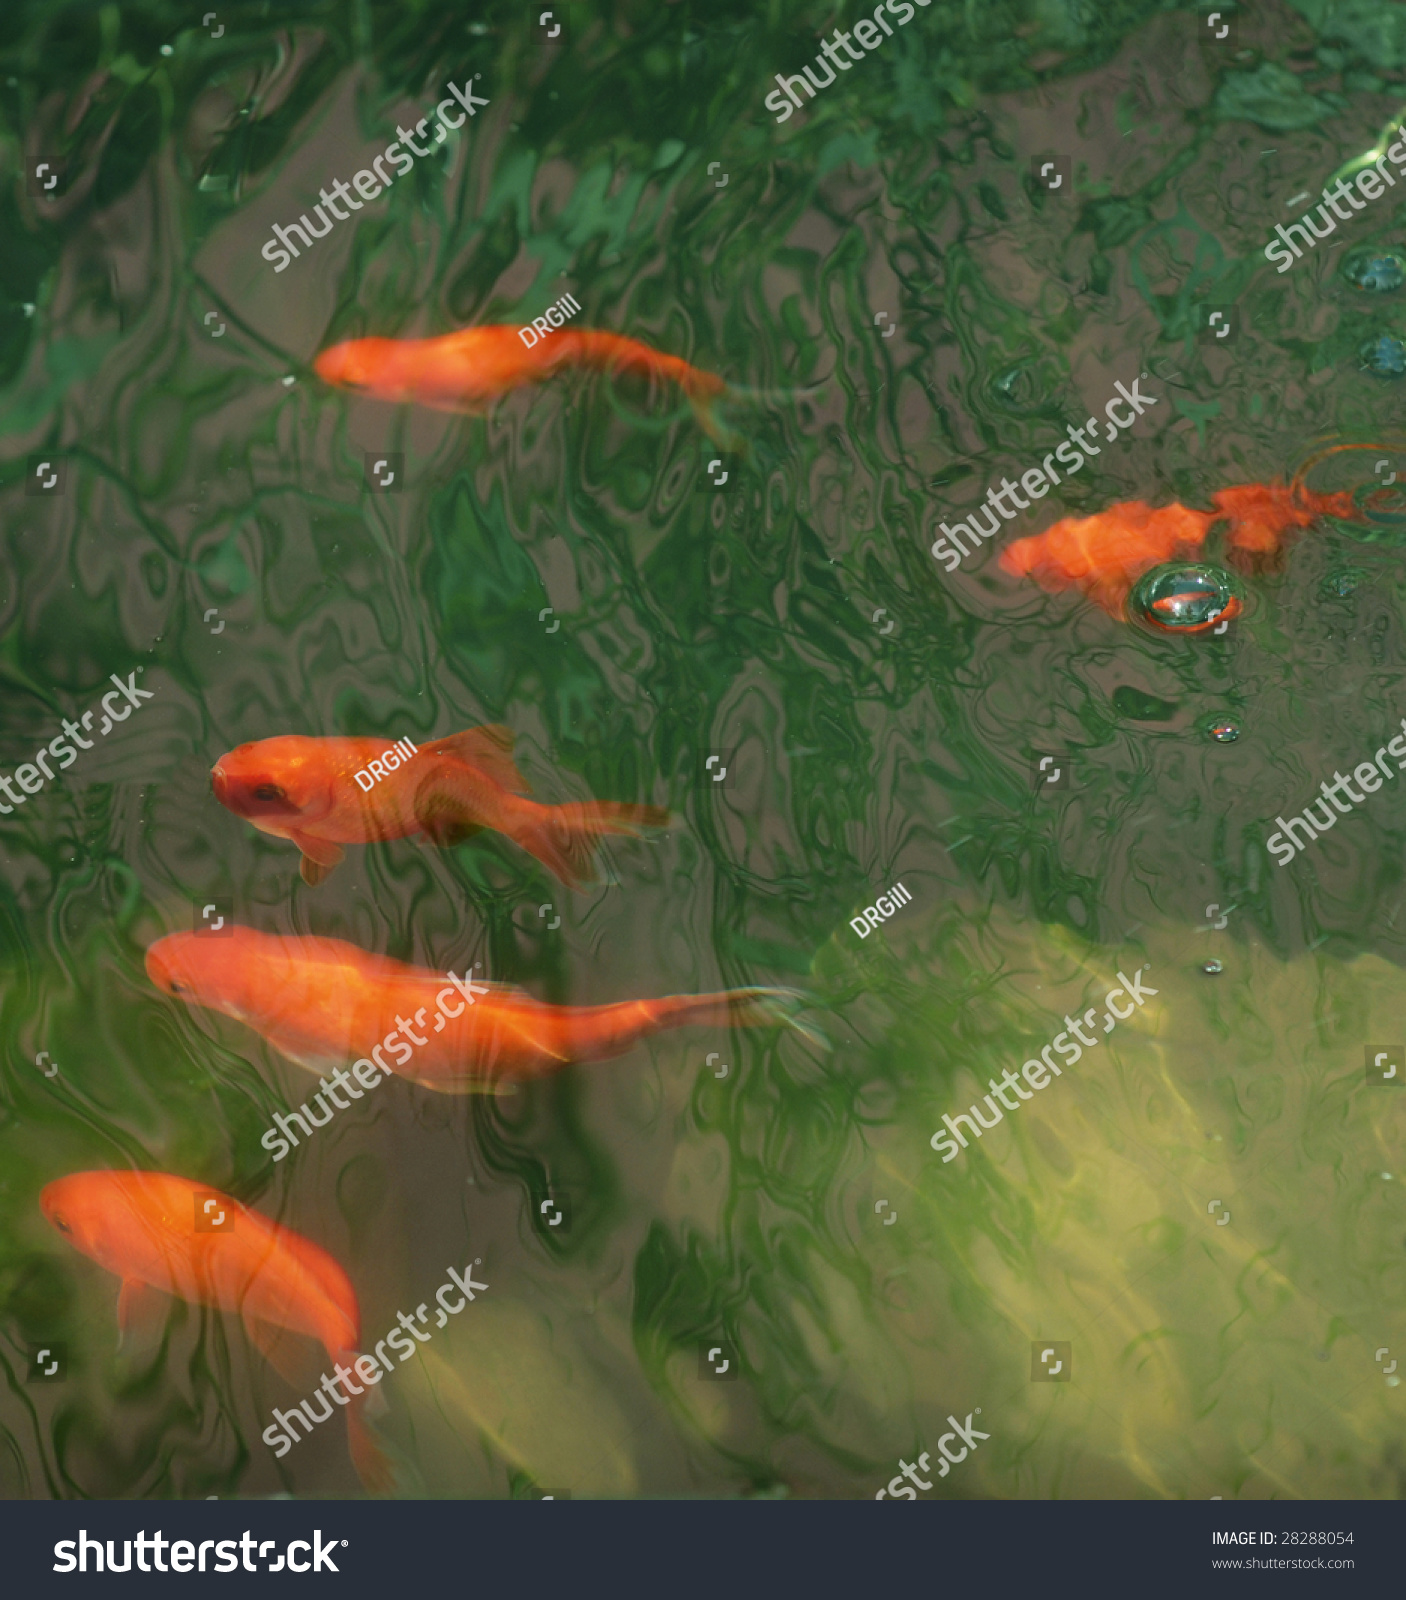 Orange coy fish in a colorful pool stock photo 28288054 for Orange coy fish